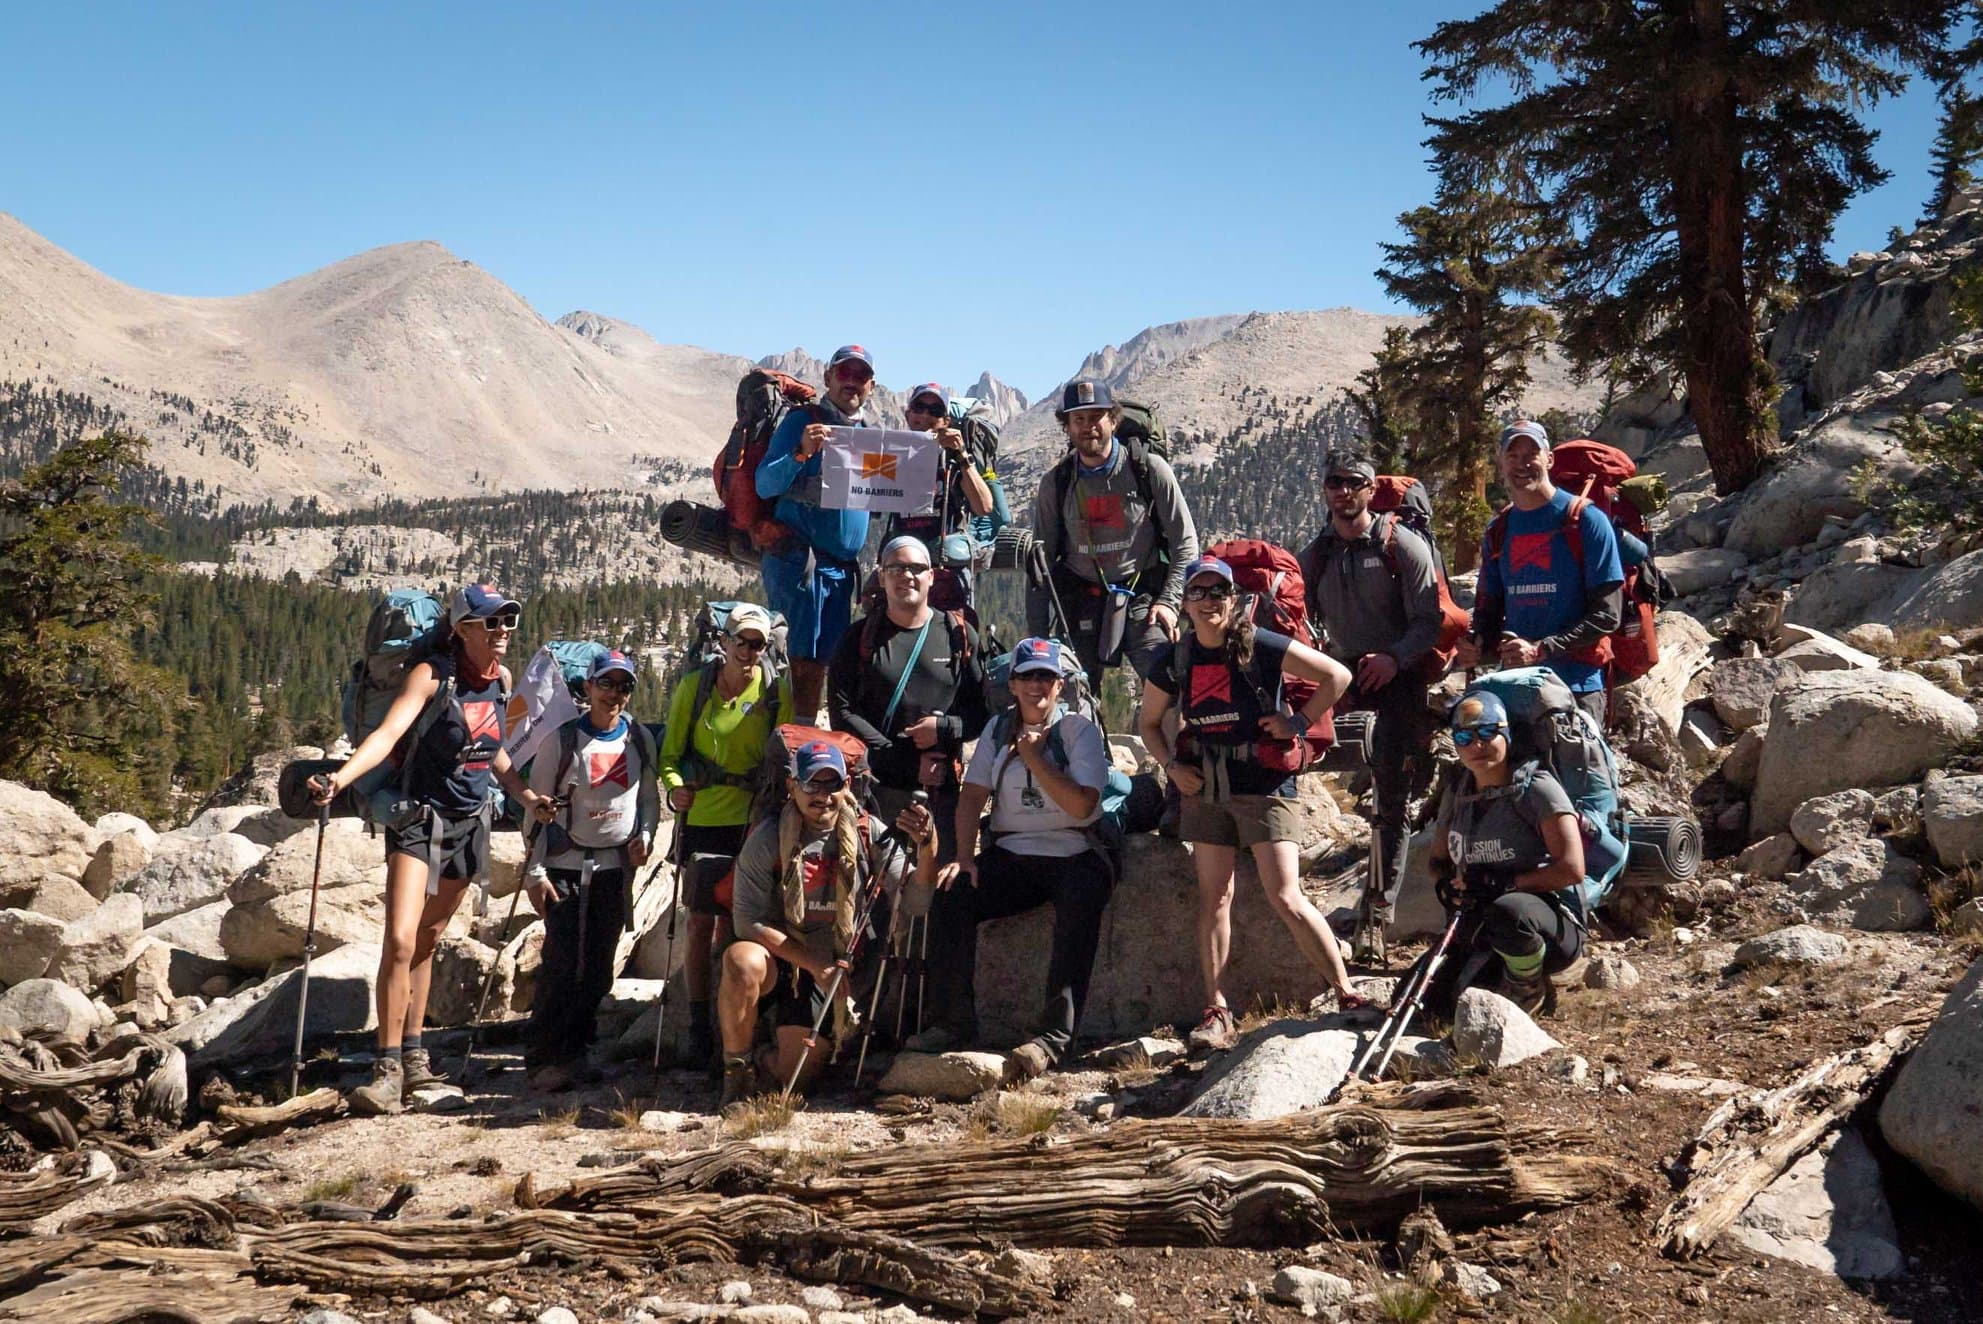 veterans on the trail to summit mt whitney